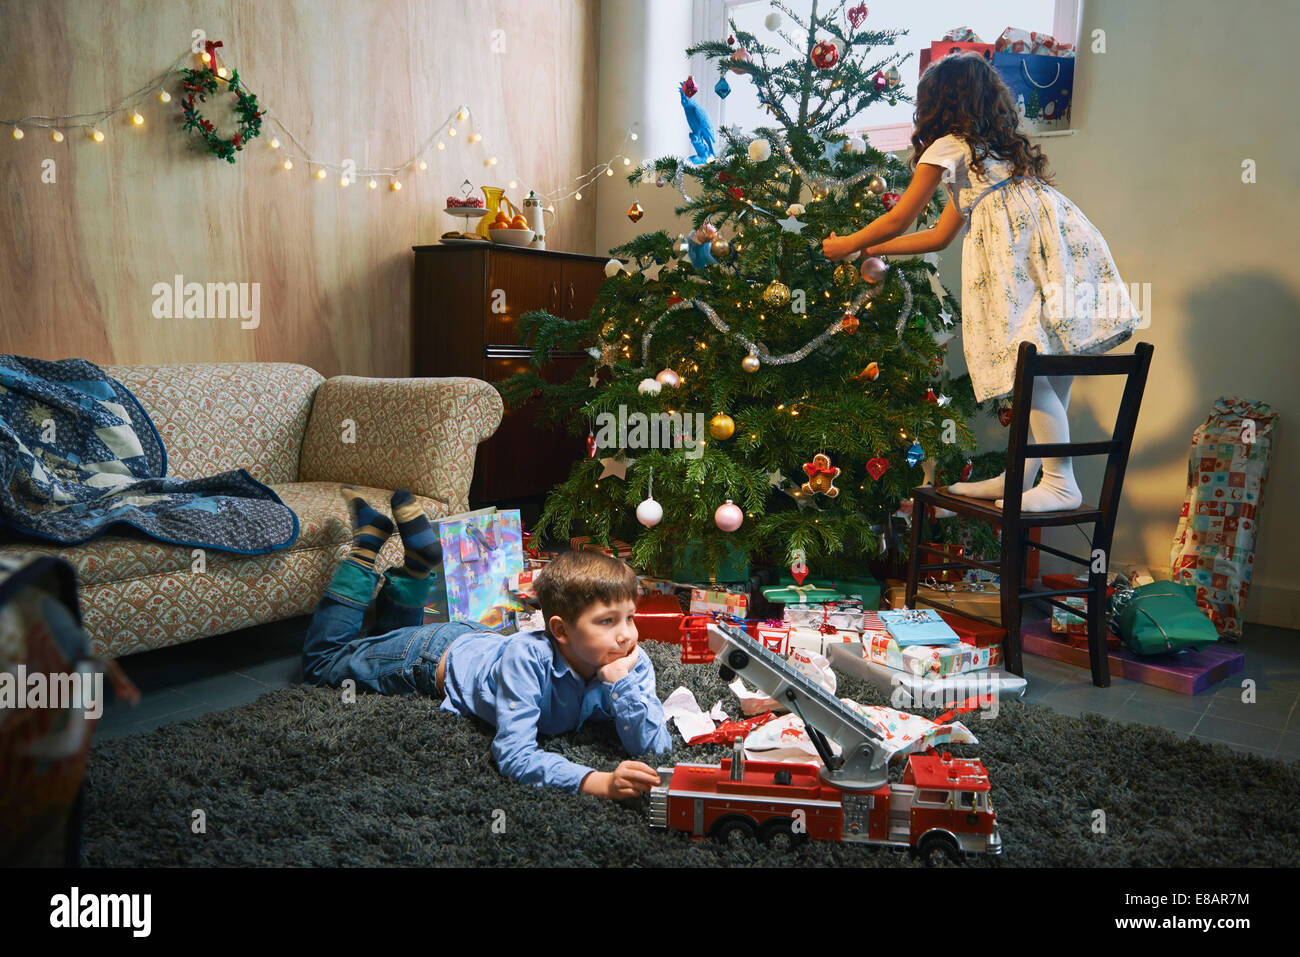 Girl arranging christmas tree whilst brother plays with xmas gifts on sitting room floor - Stock Image